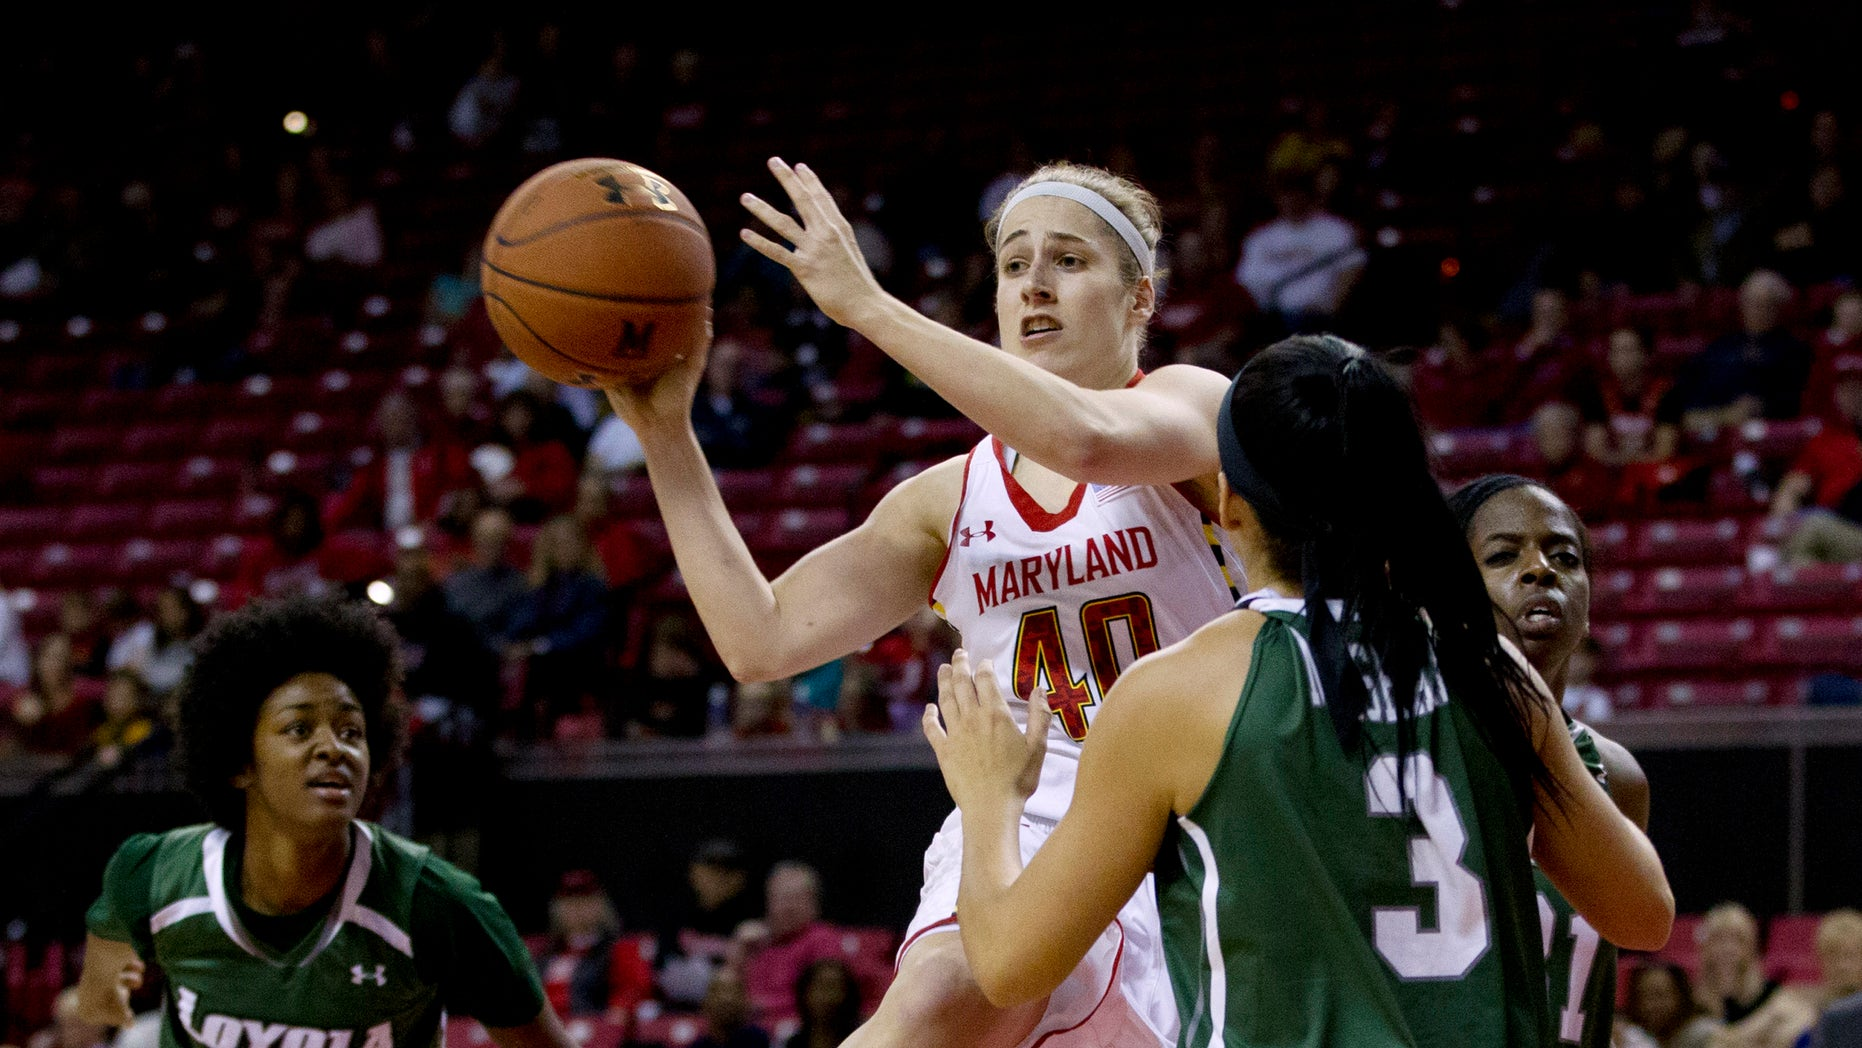 Maryland's Katie Rutan (40) passes the ball during the first half of an NCAA college basketball game against Loyola in College Park, Md., Sunday, Nov. 10, 2013. (AP Photo/Jose Luis Magana)